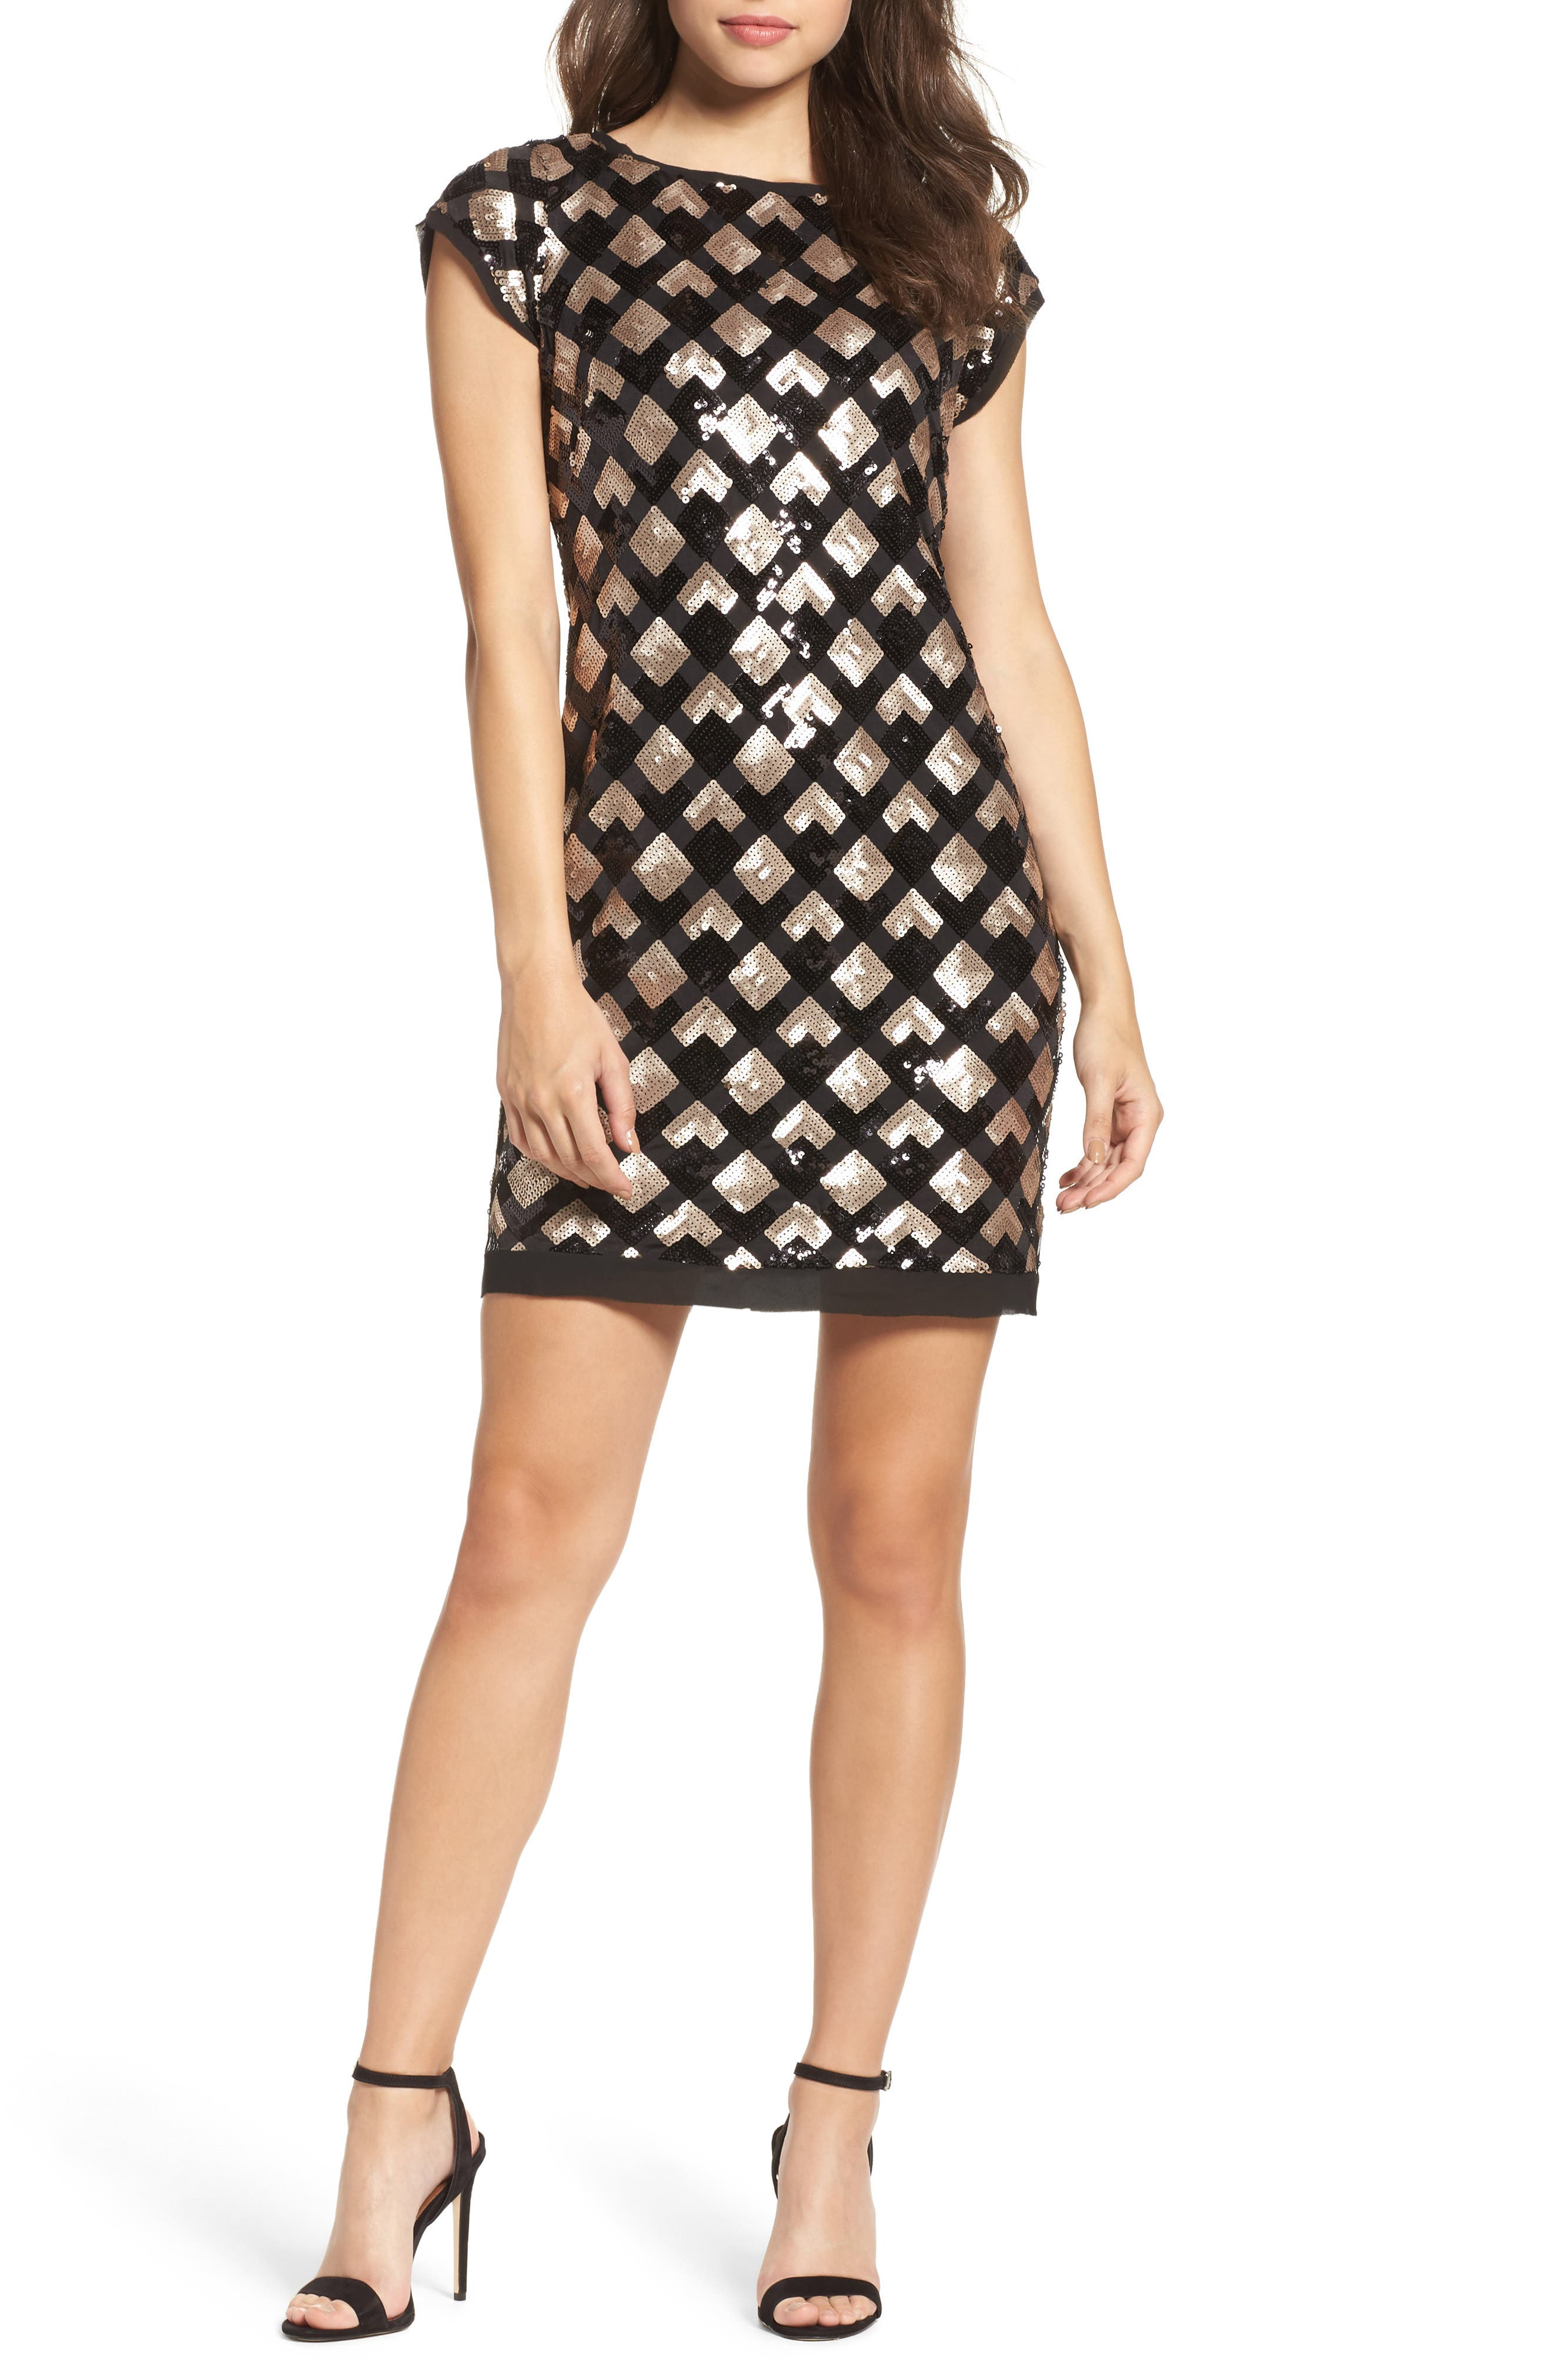 Sequin Sheath Dress,                             Main thumbnail 1, color,                             Black/ Champagne